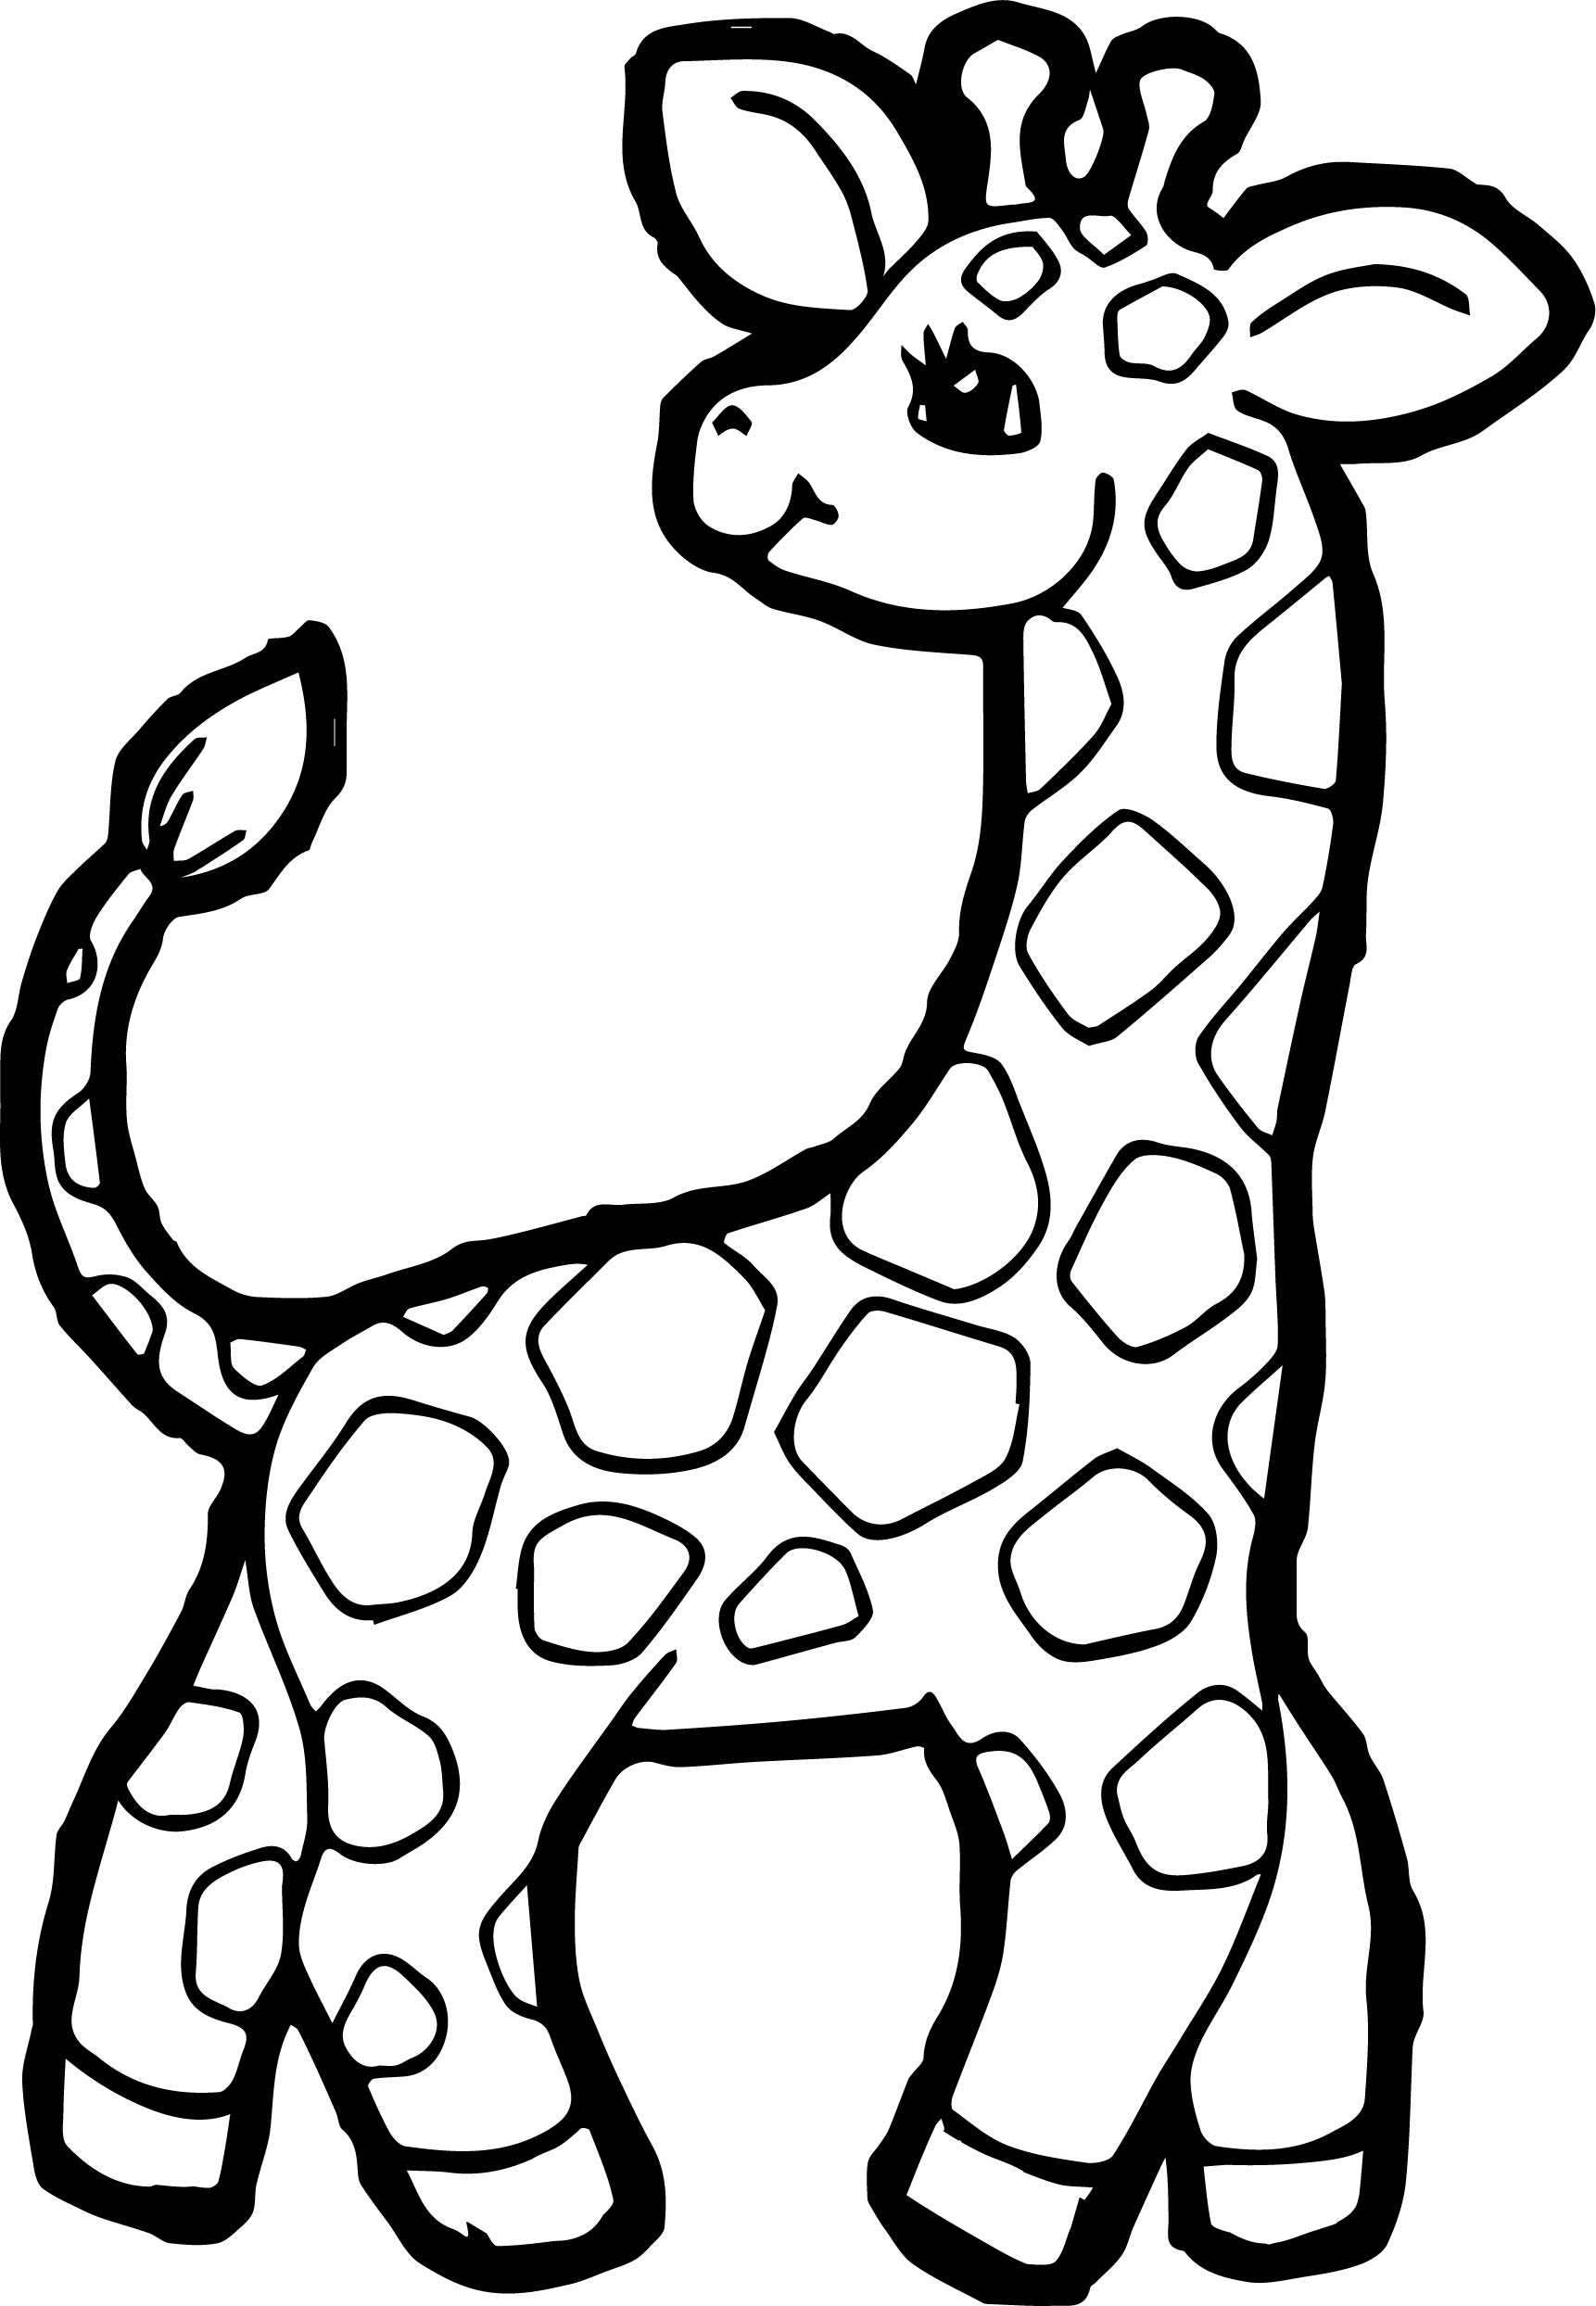 giraffe face coloring pages giraffe outline drawing google search 기린 일러스트레이션 그림 pages face giraffe coloring